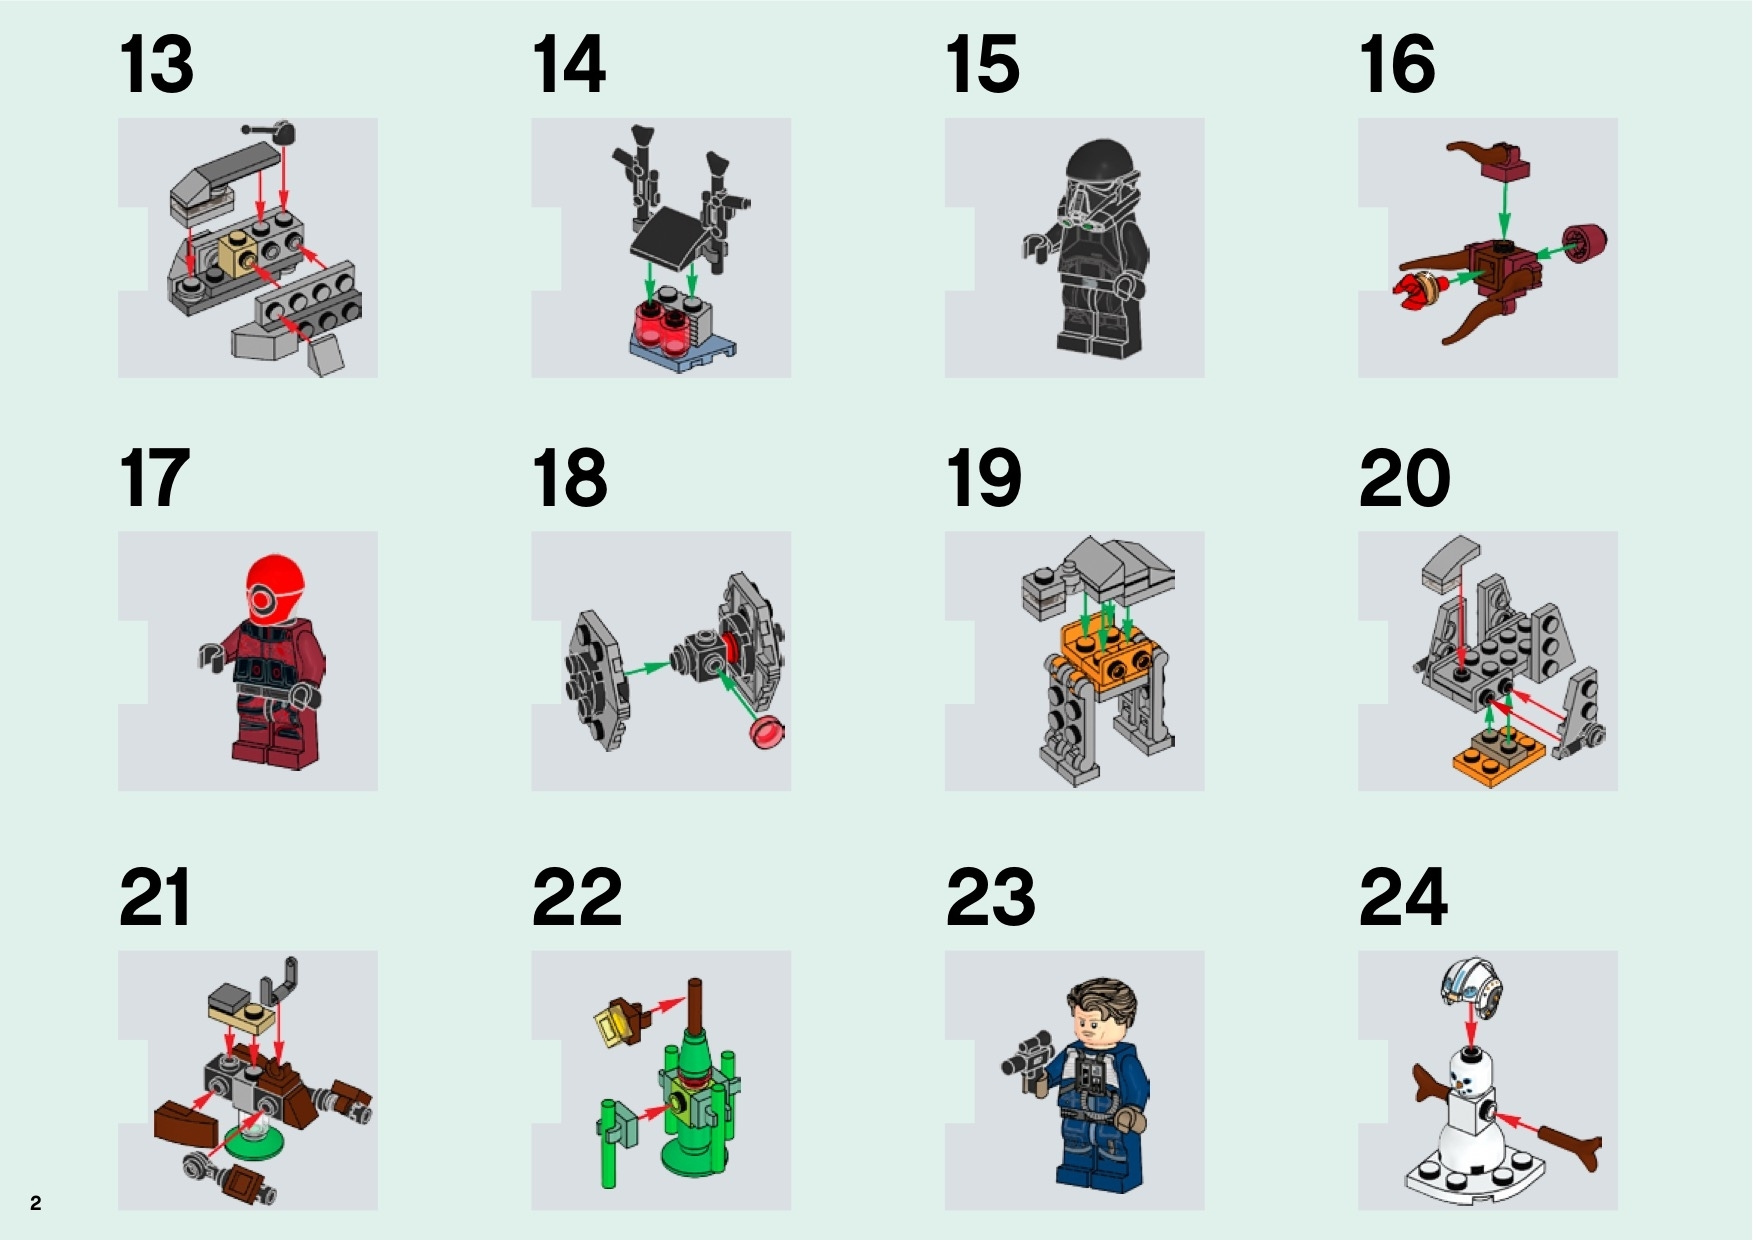 Lego 75213 Star Wars Advent Calendar Instructions, Star Wars intended for Are There Instructions For The Lego Star Wars Advent Calendar